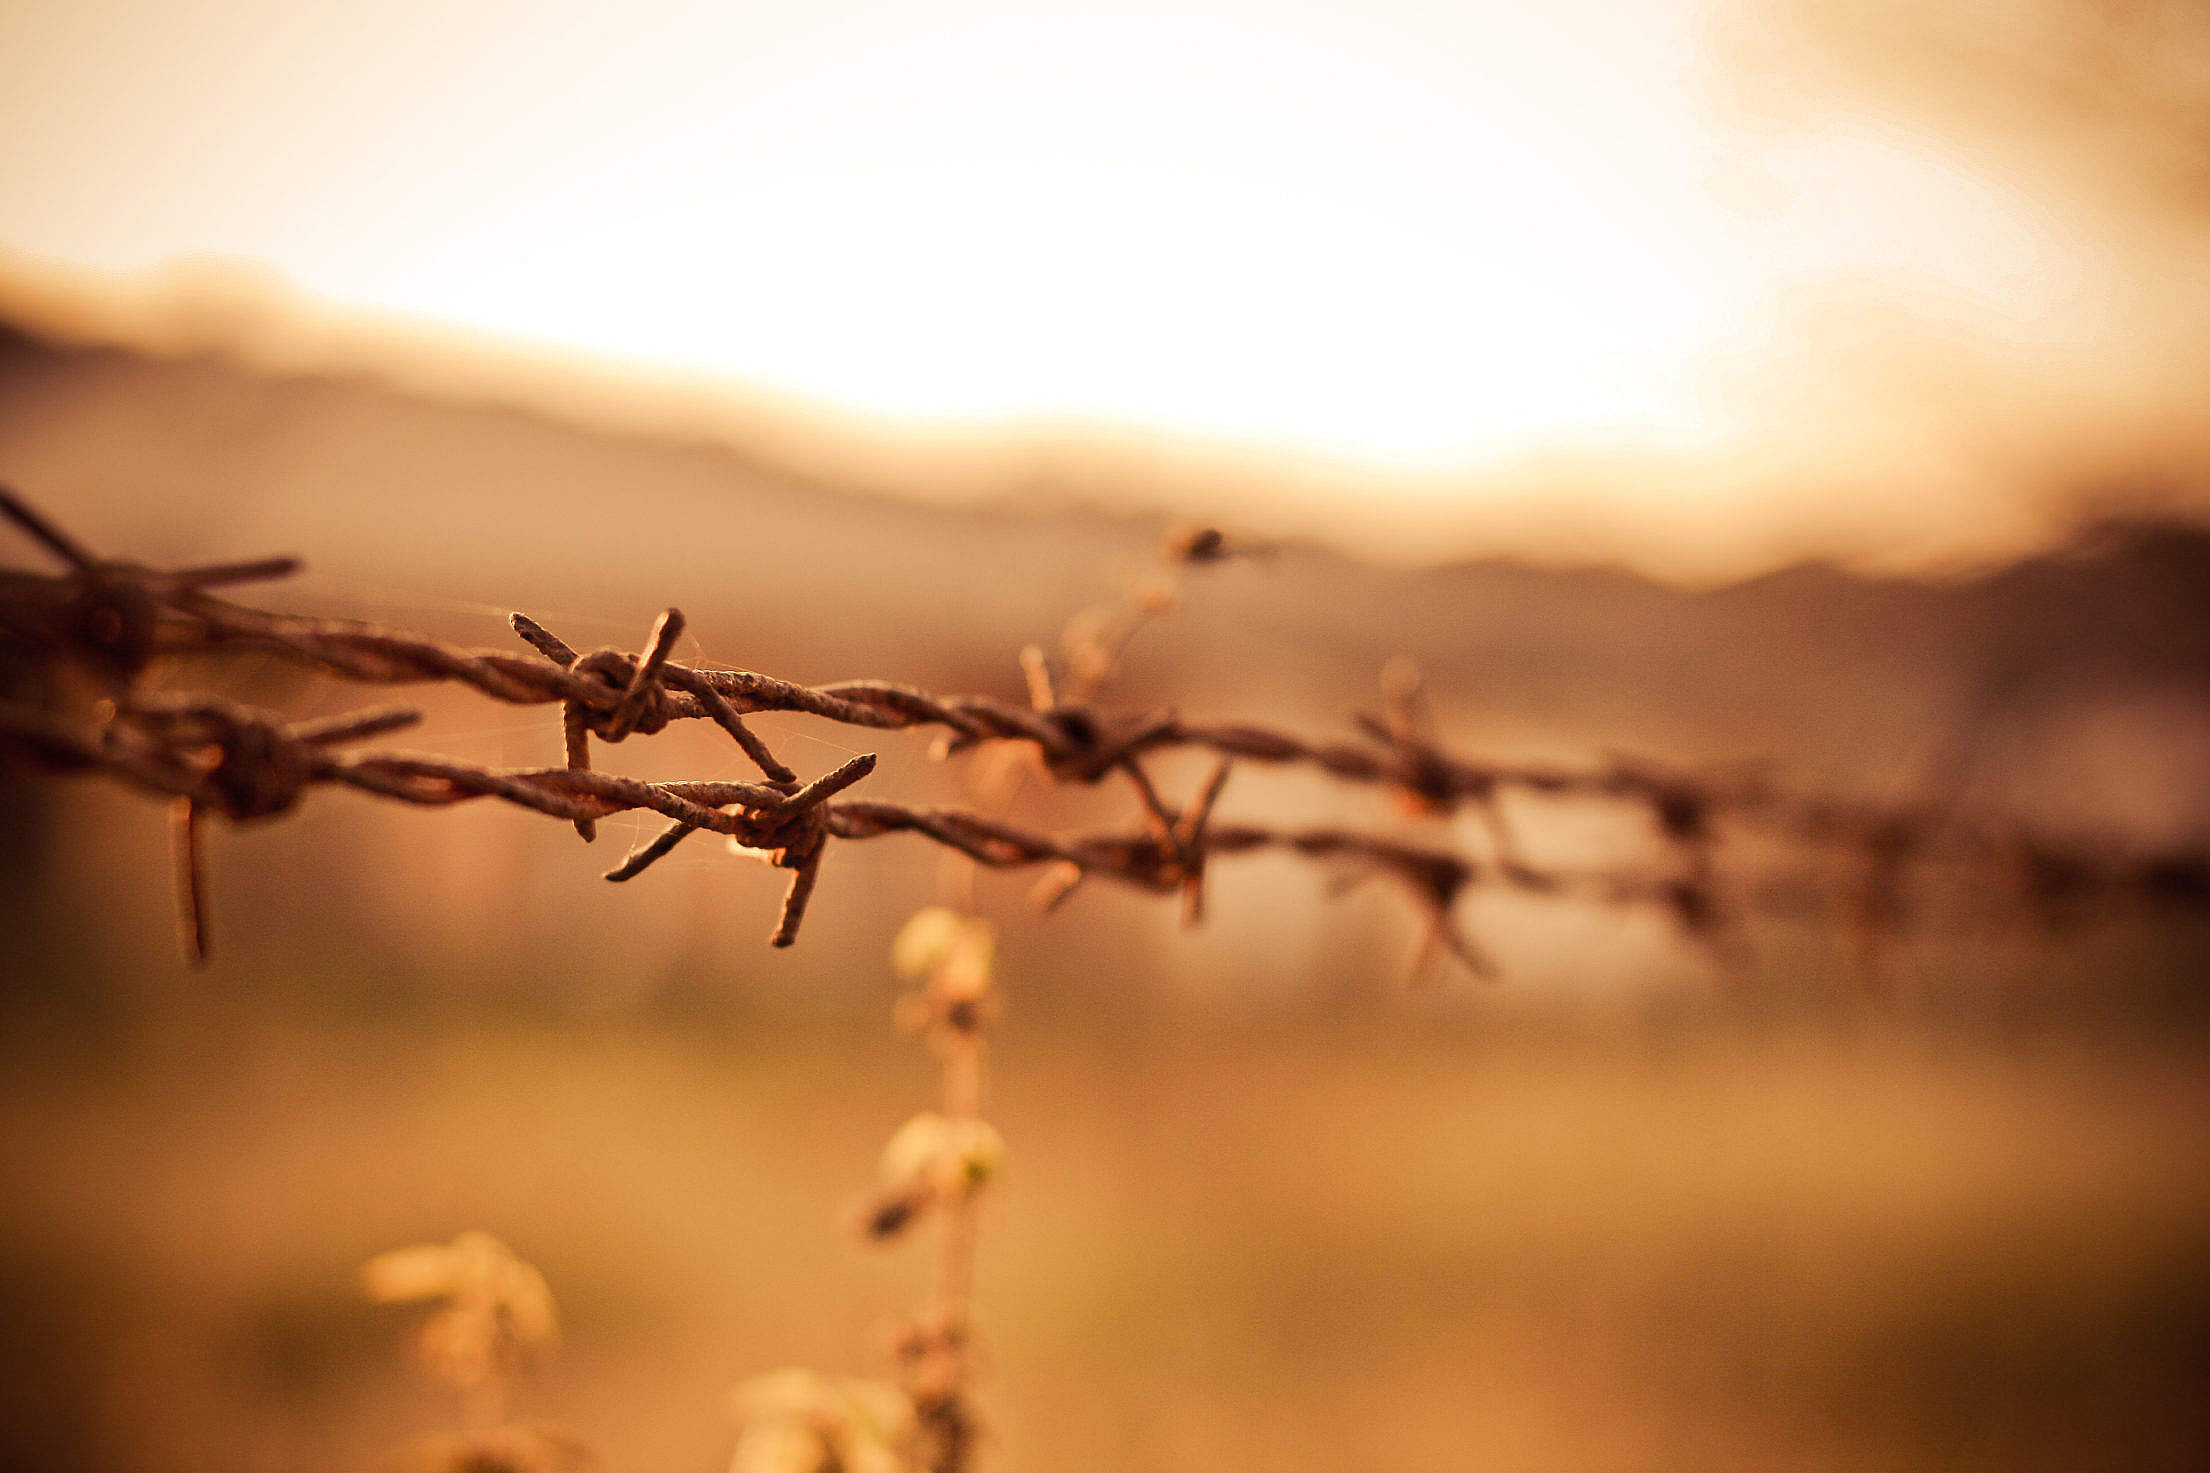 Barbed Wires Free Stock Photo